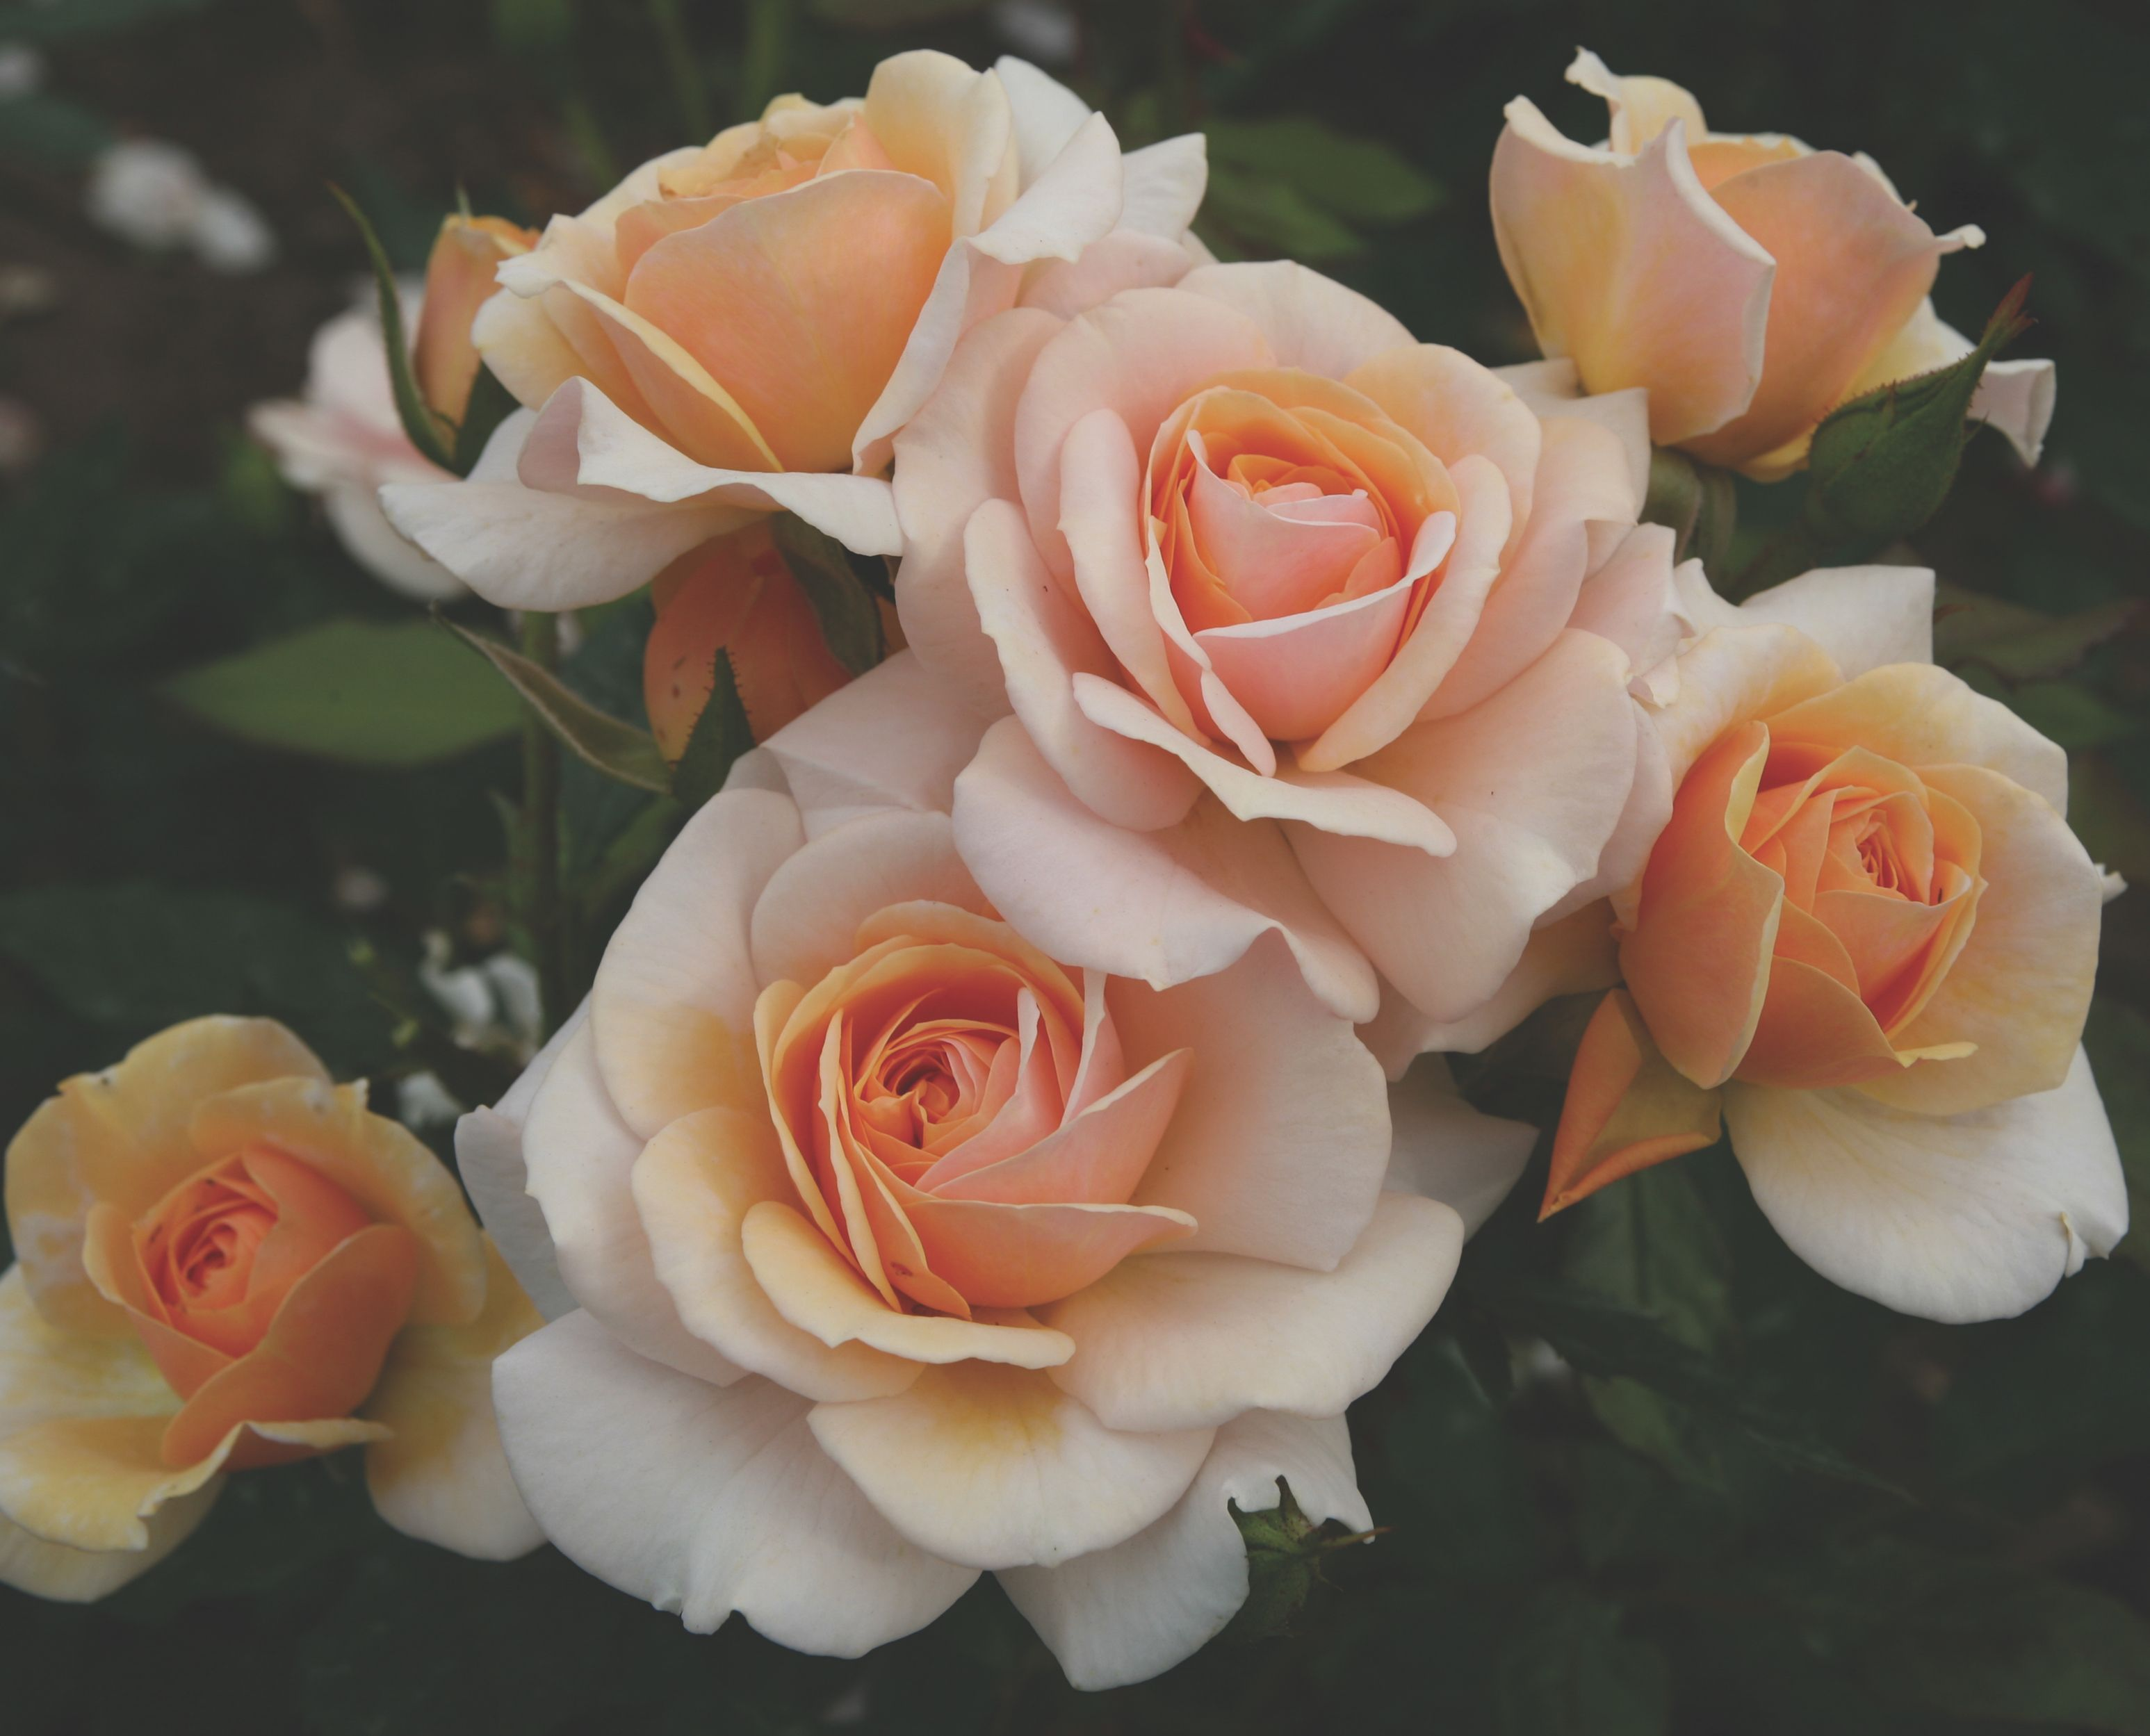 Sweet Honey 'Kormecaso' is the 2020 Rose of the Year